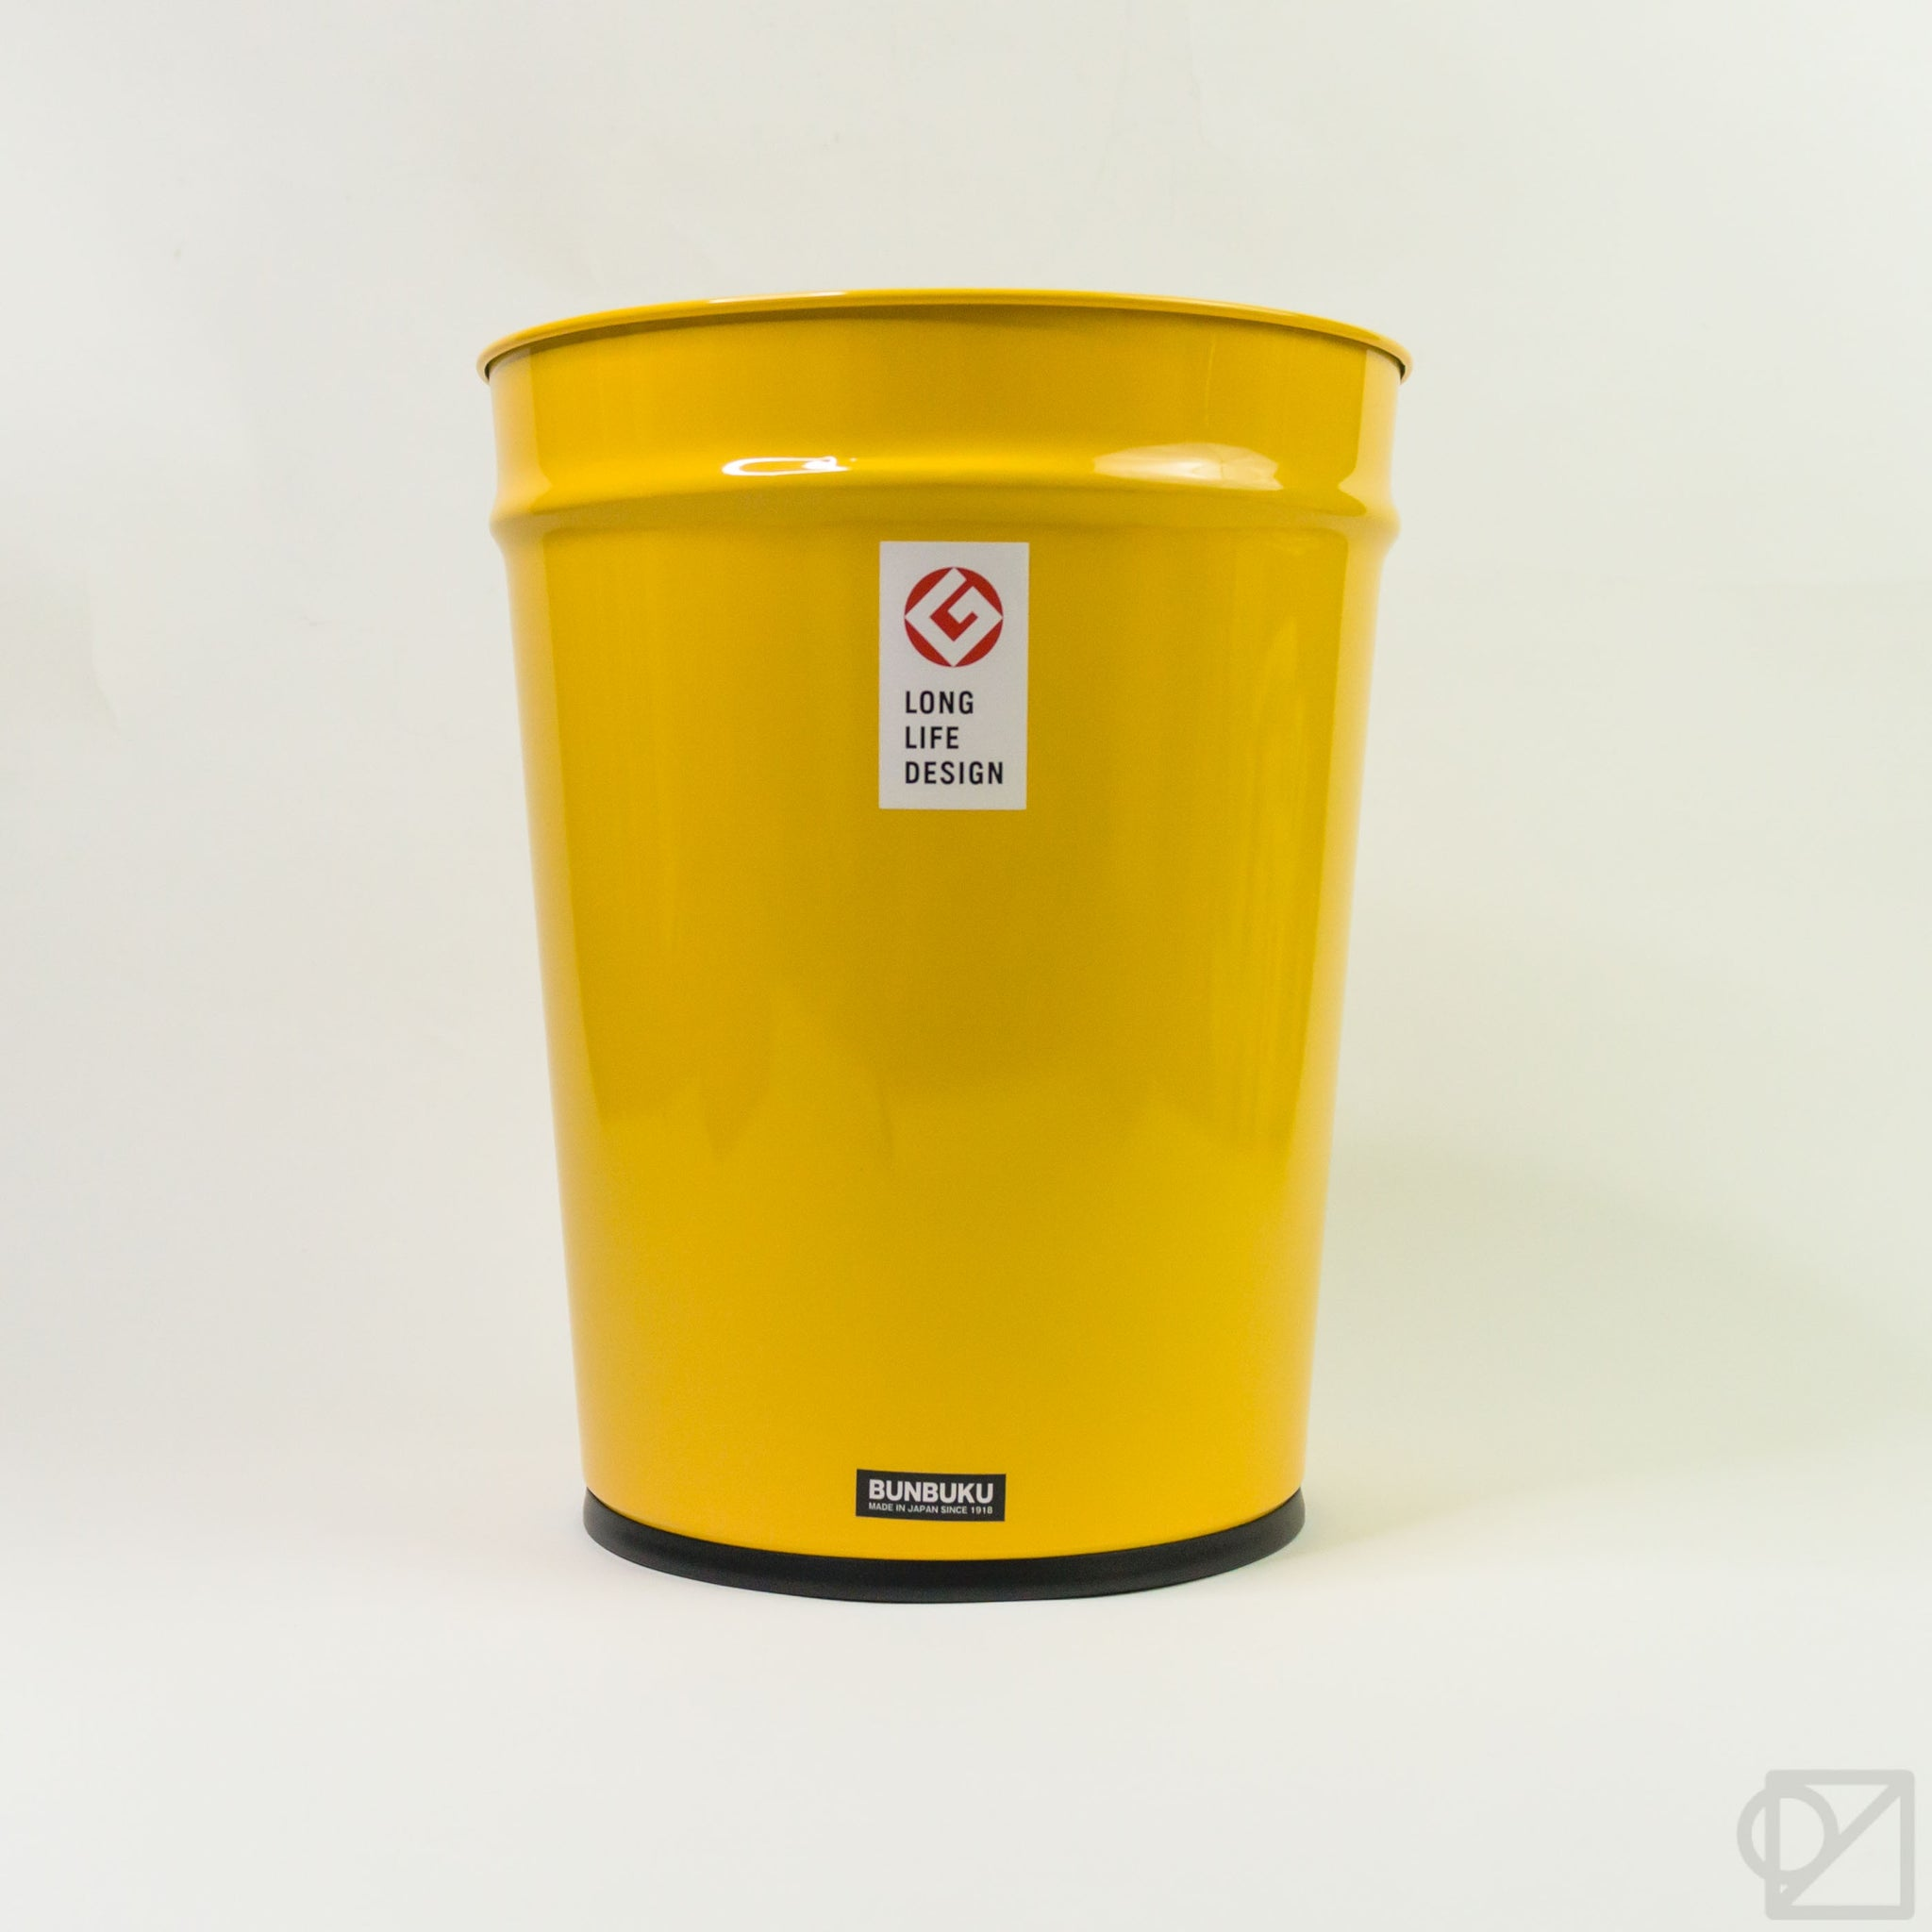 BUNBUKU Large Waste Basket Yellow